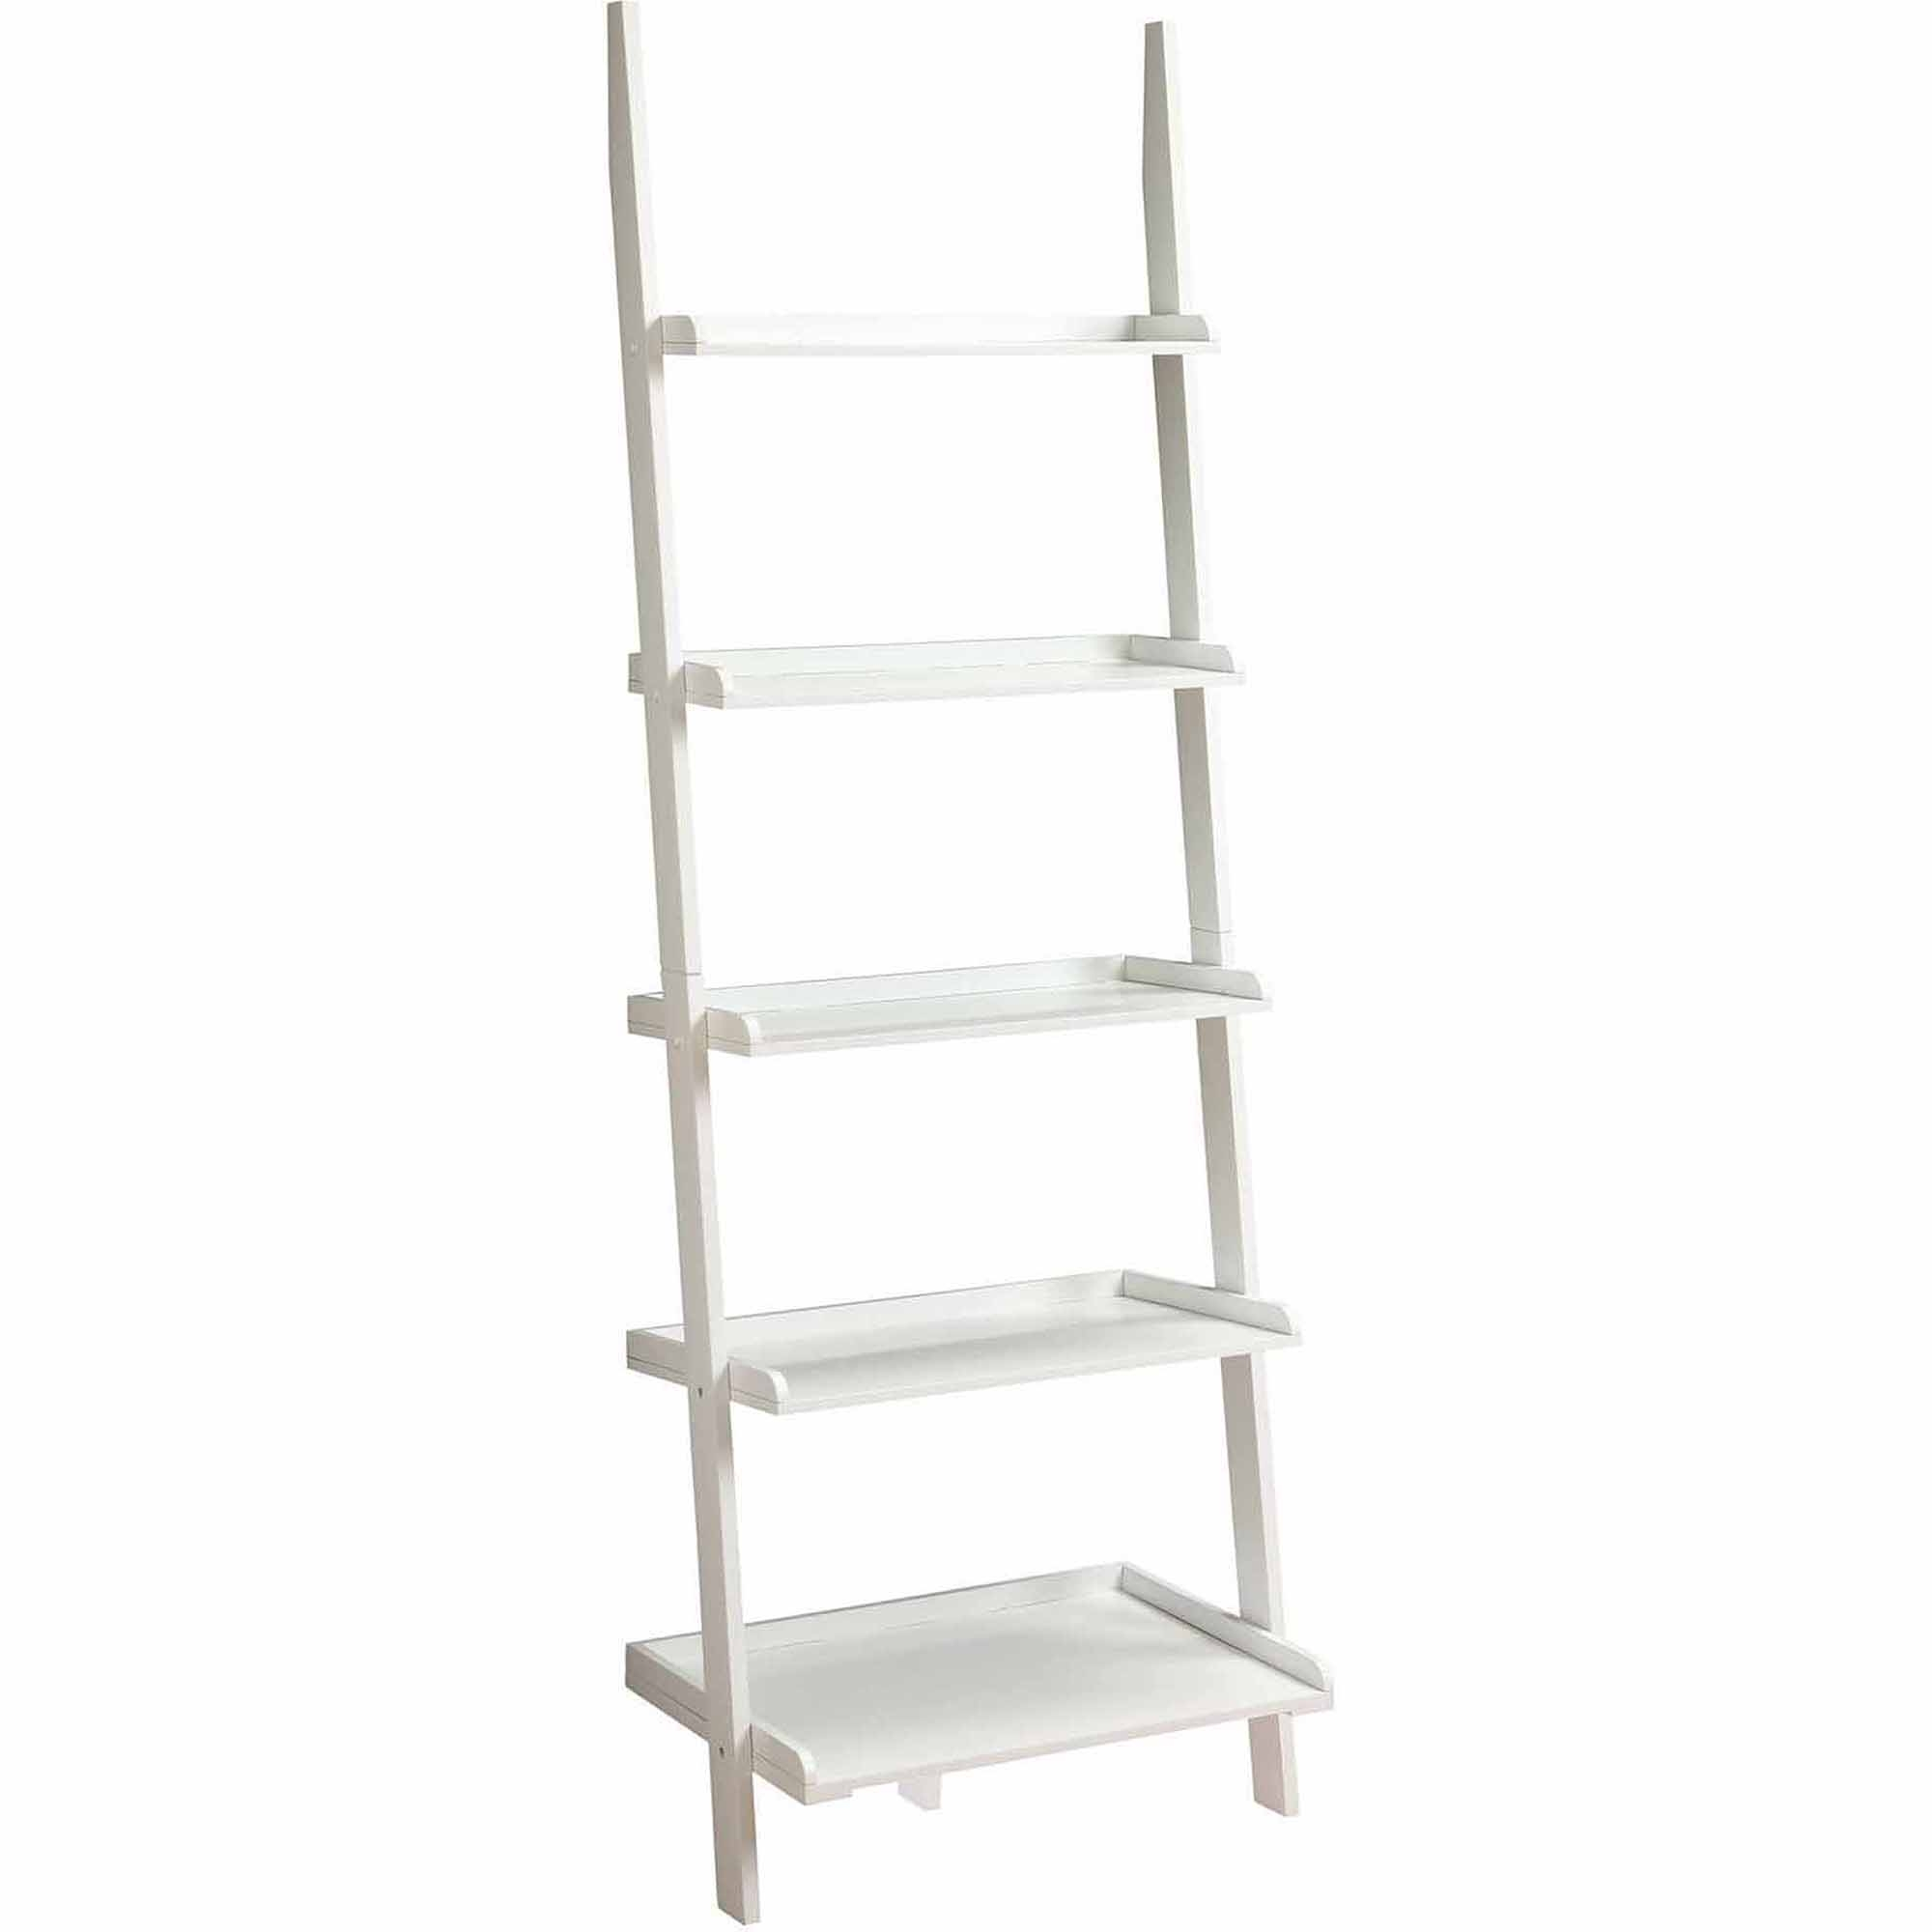 Convenience Concepts French Country Bookshelf Ladder White For White Ladder Shelf (View 14 of 15)